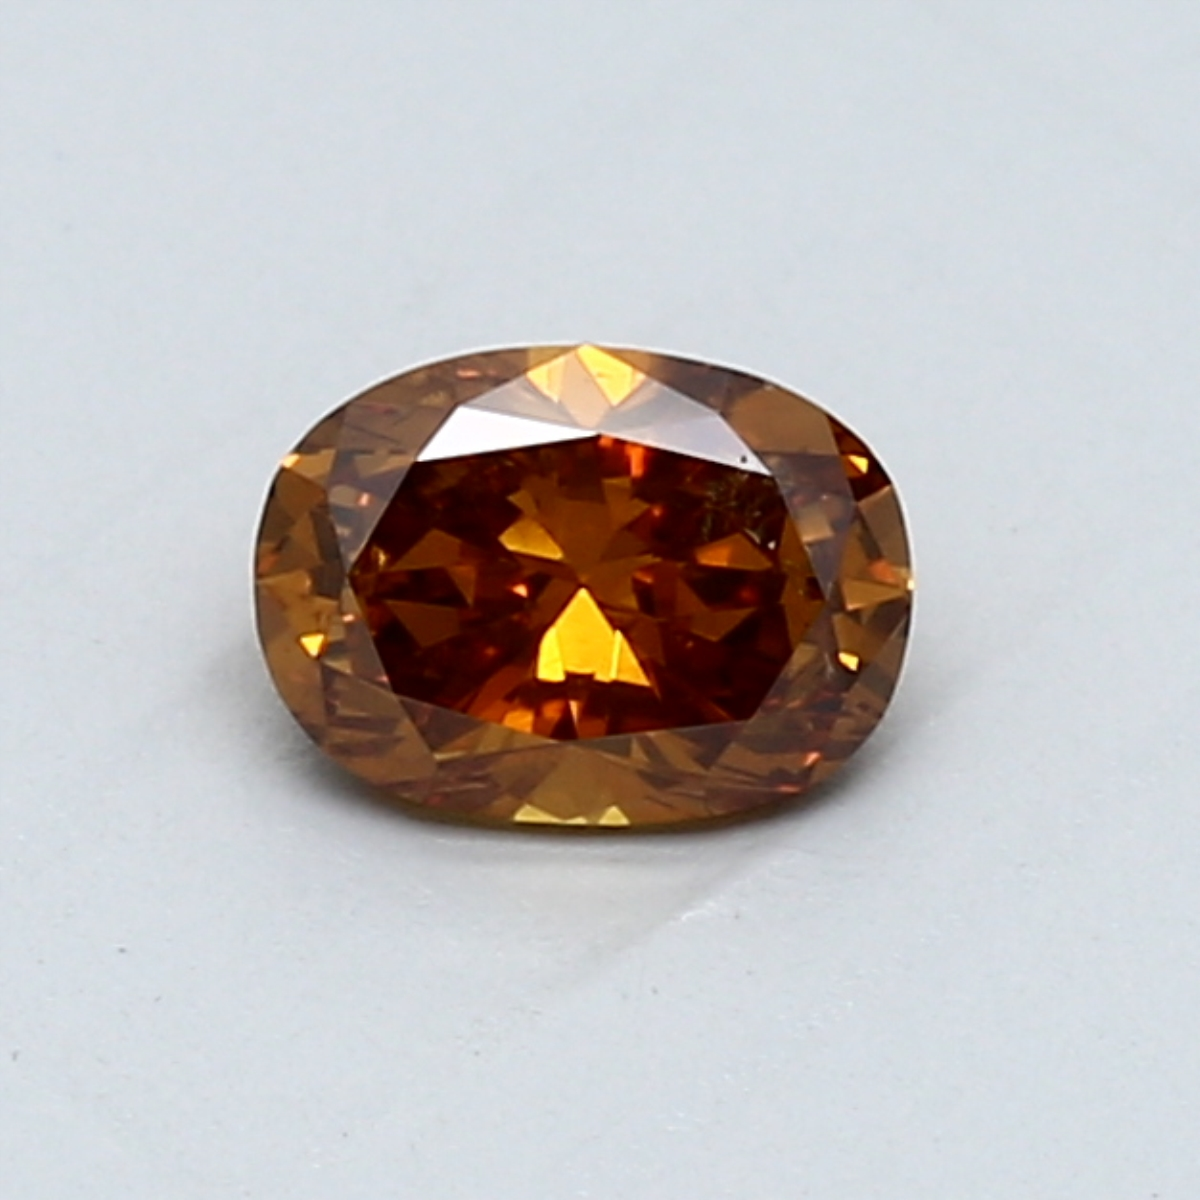 0.54-Carat Deep Brownish Yellowish Orange Oval Diamond